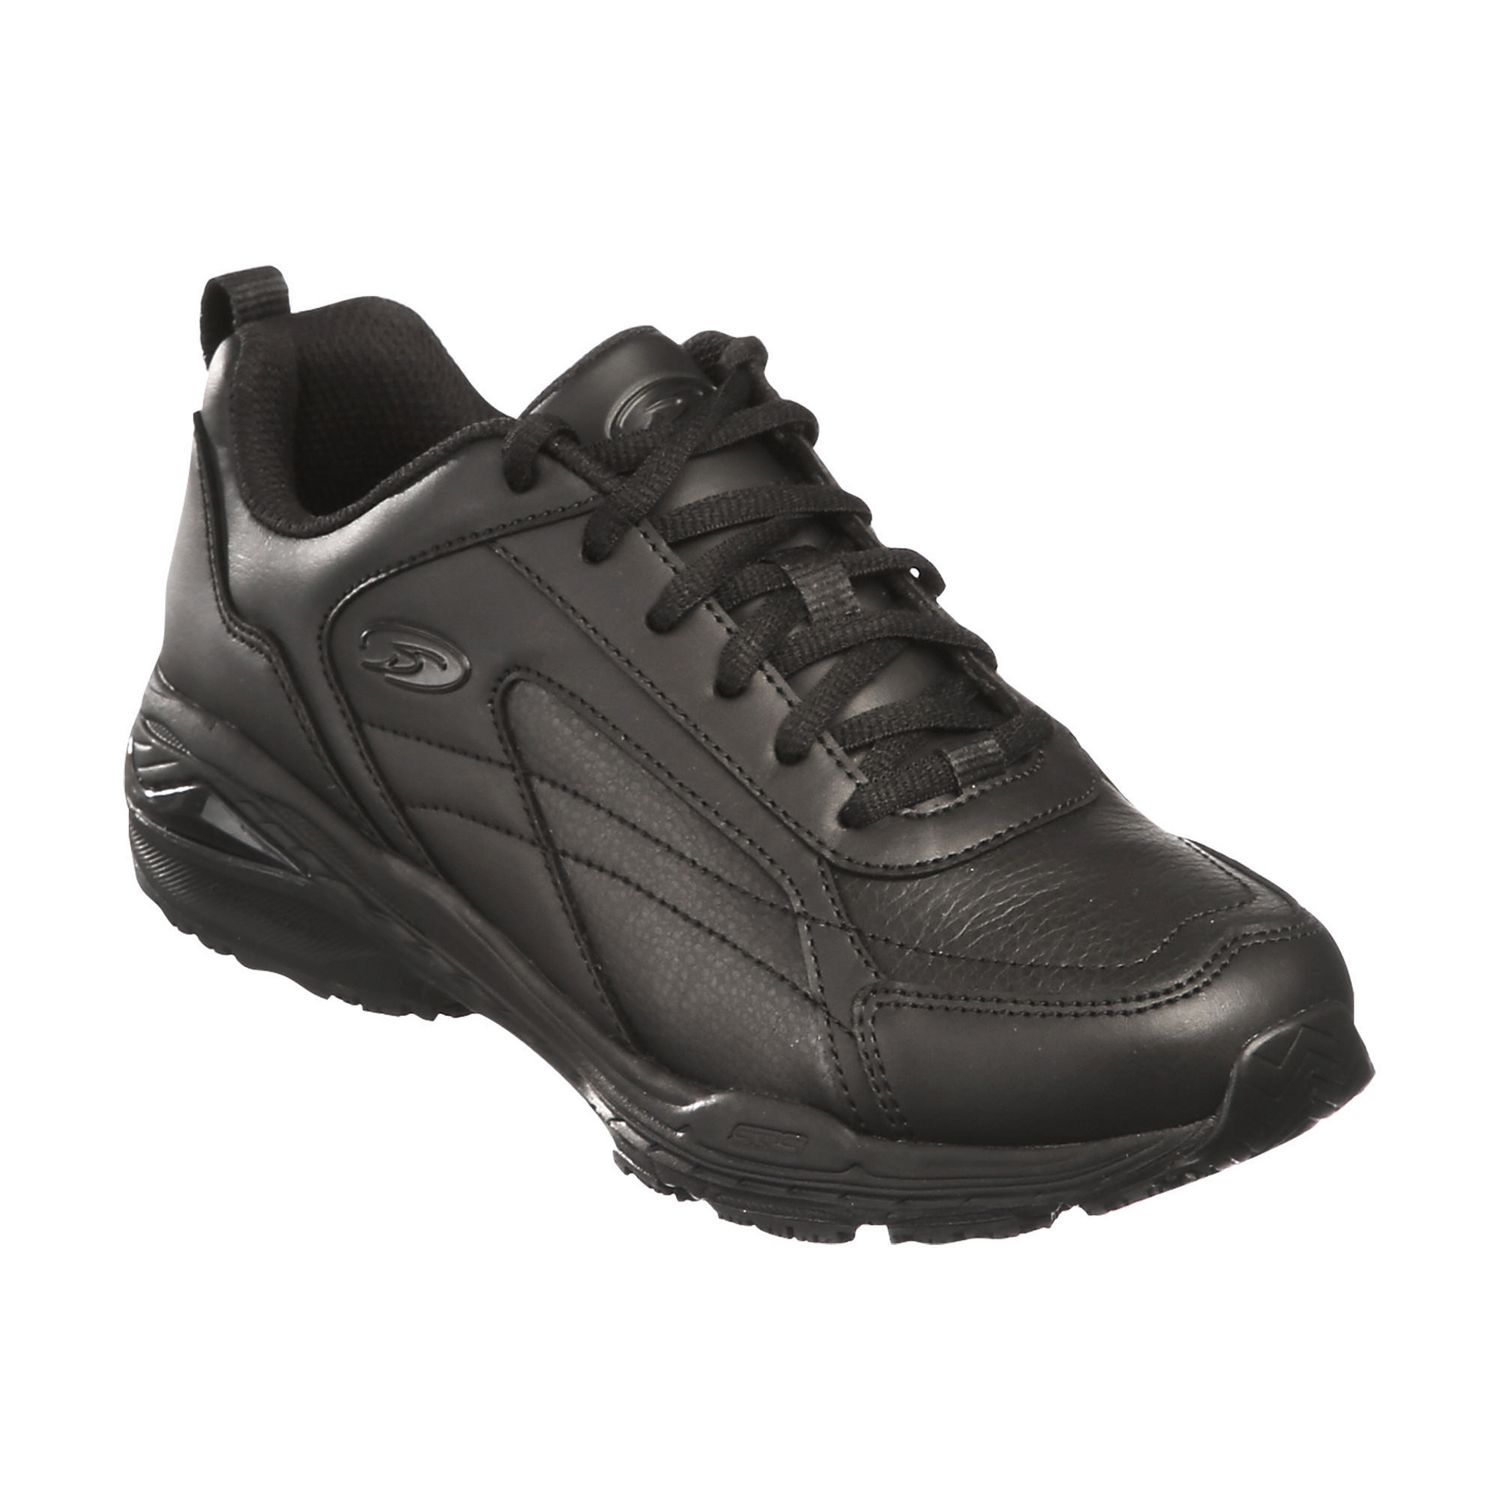 Dr. Scholl's Women's Volley Work Shoes